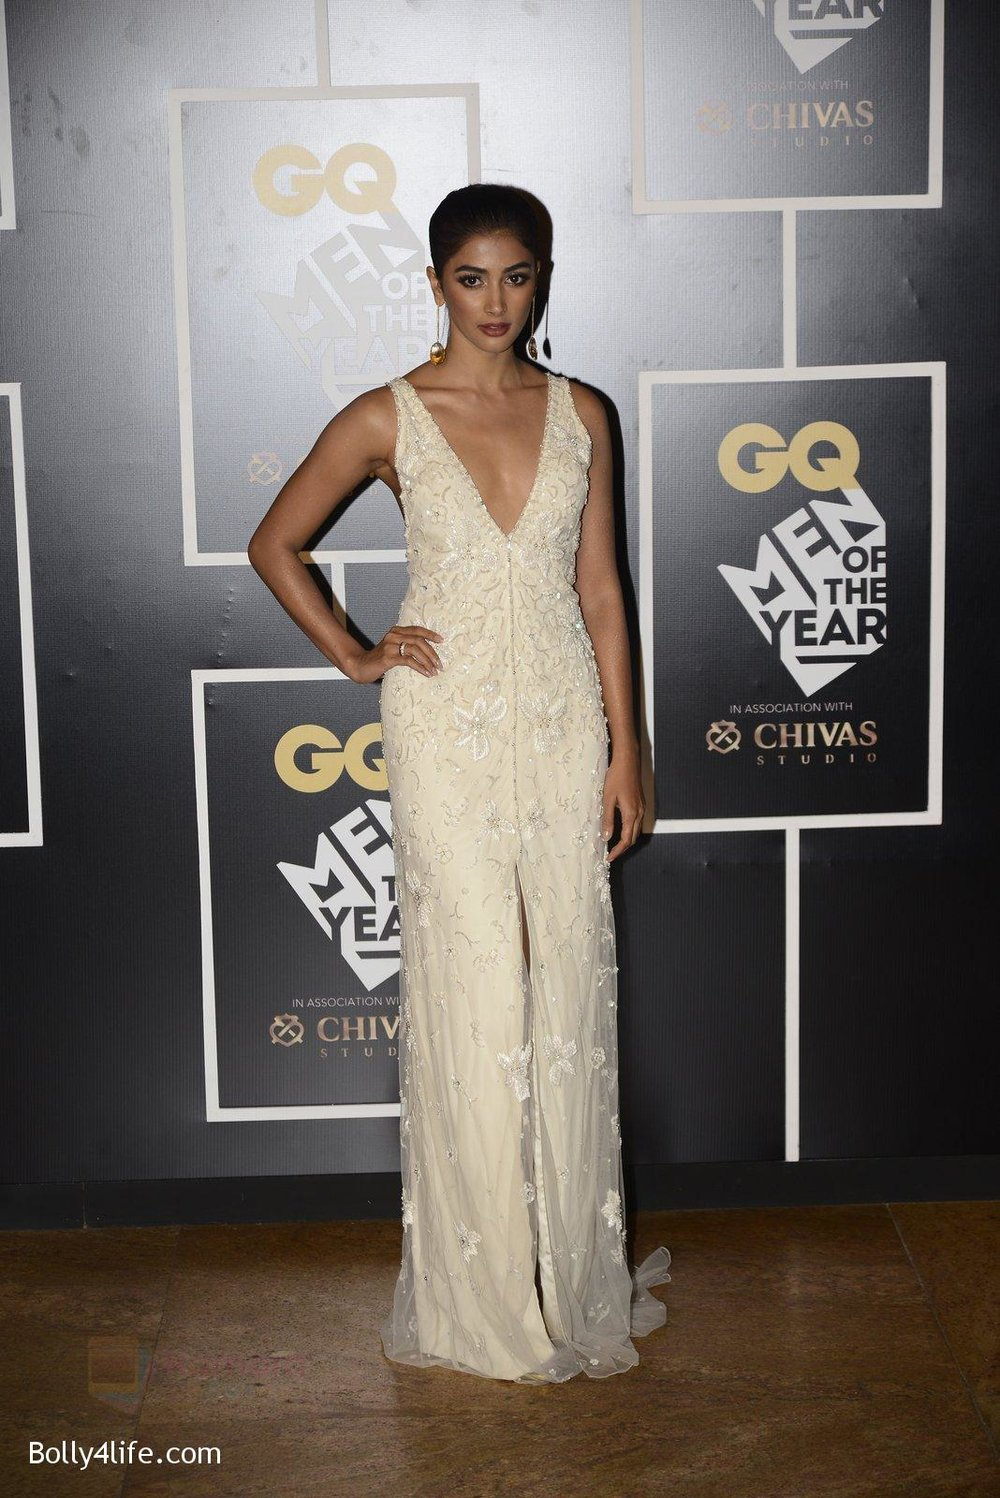 Pooja-Hegde-at-GQ-MEN-OF-THE-YEAR-on-27th-Sept-2016-1005.jpg